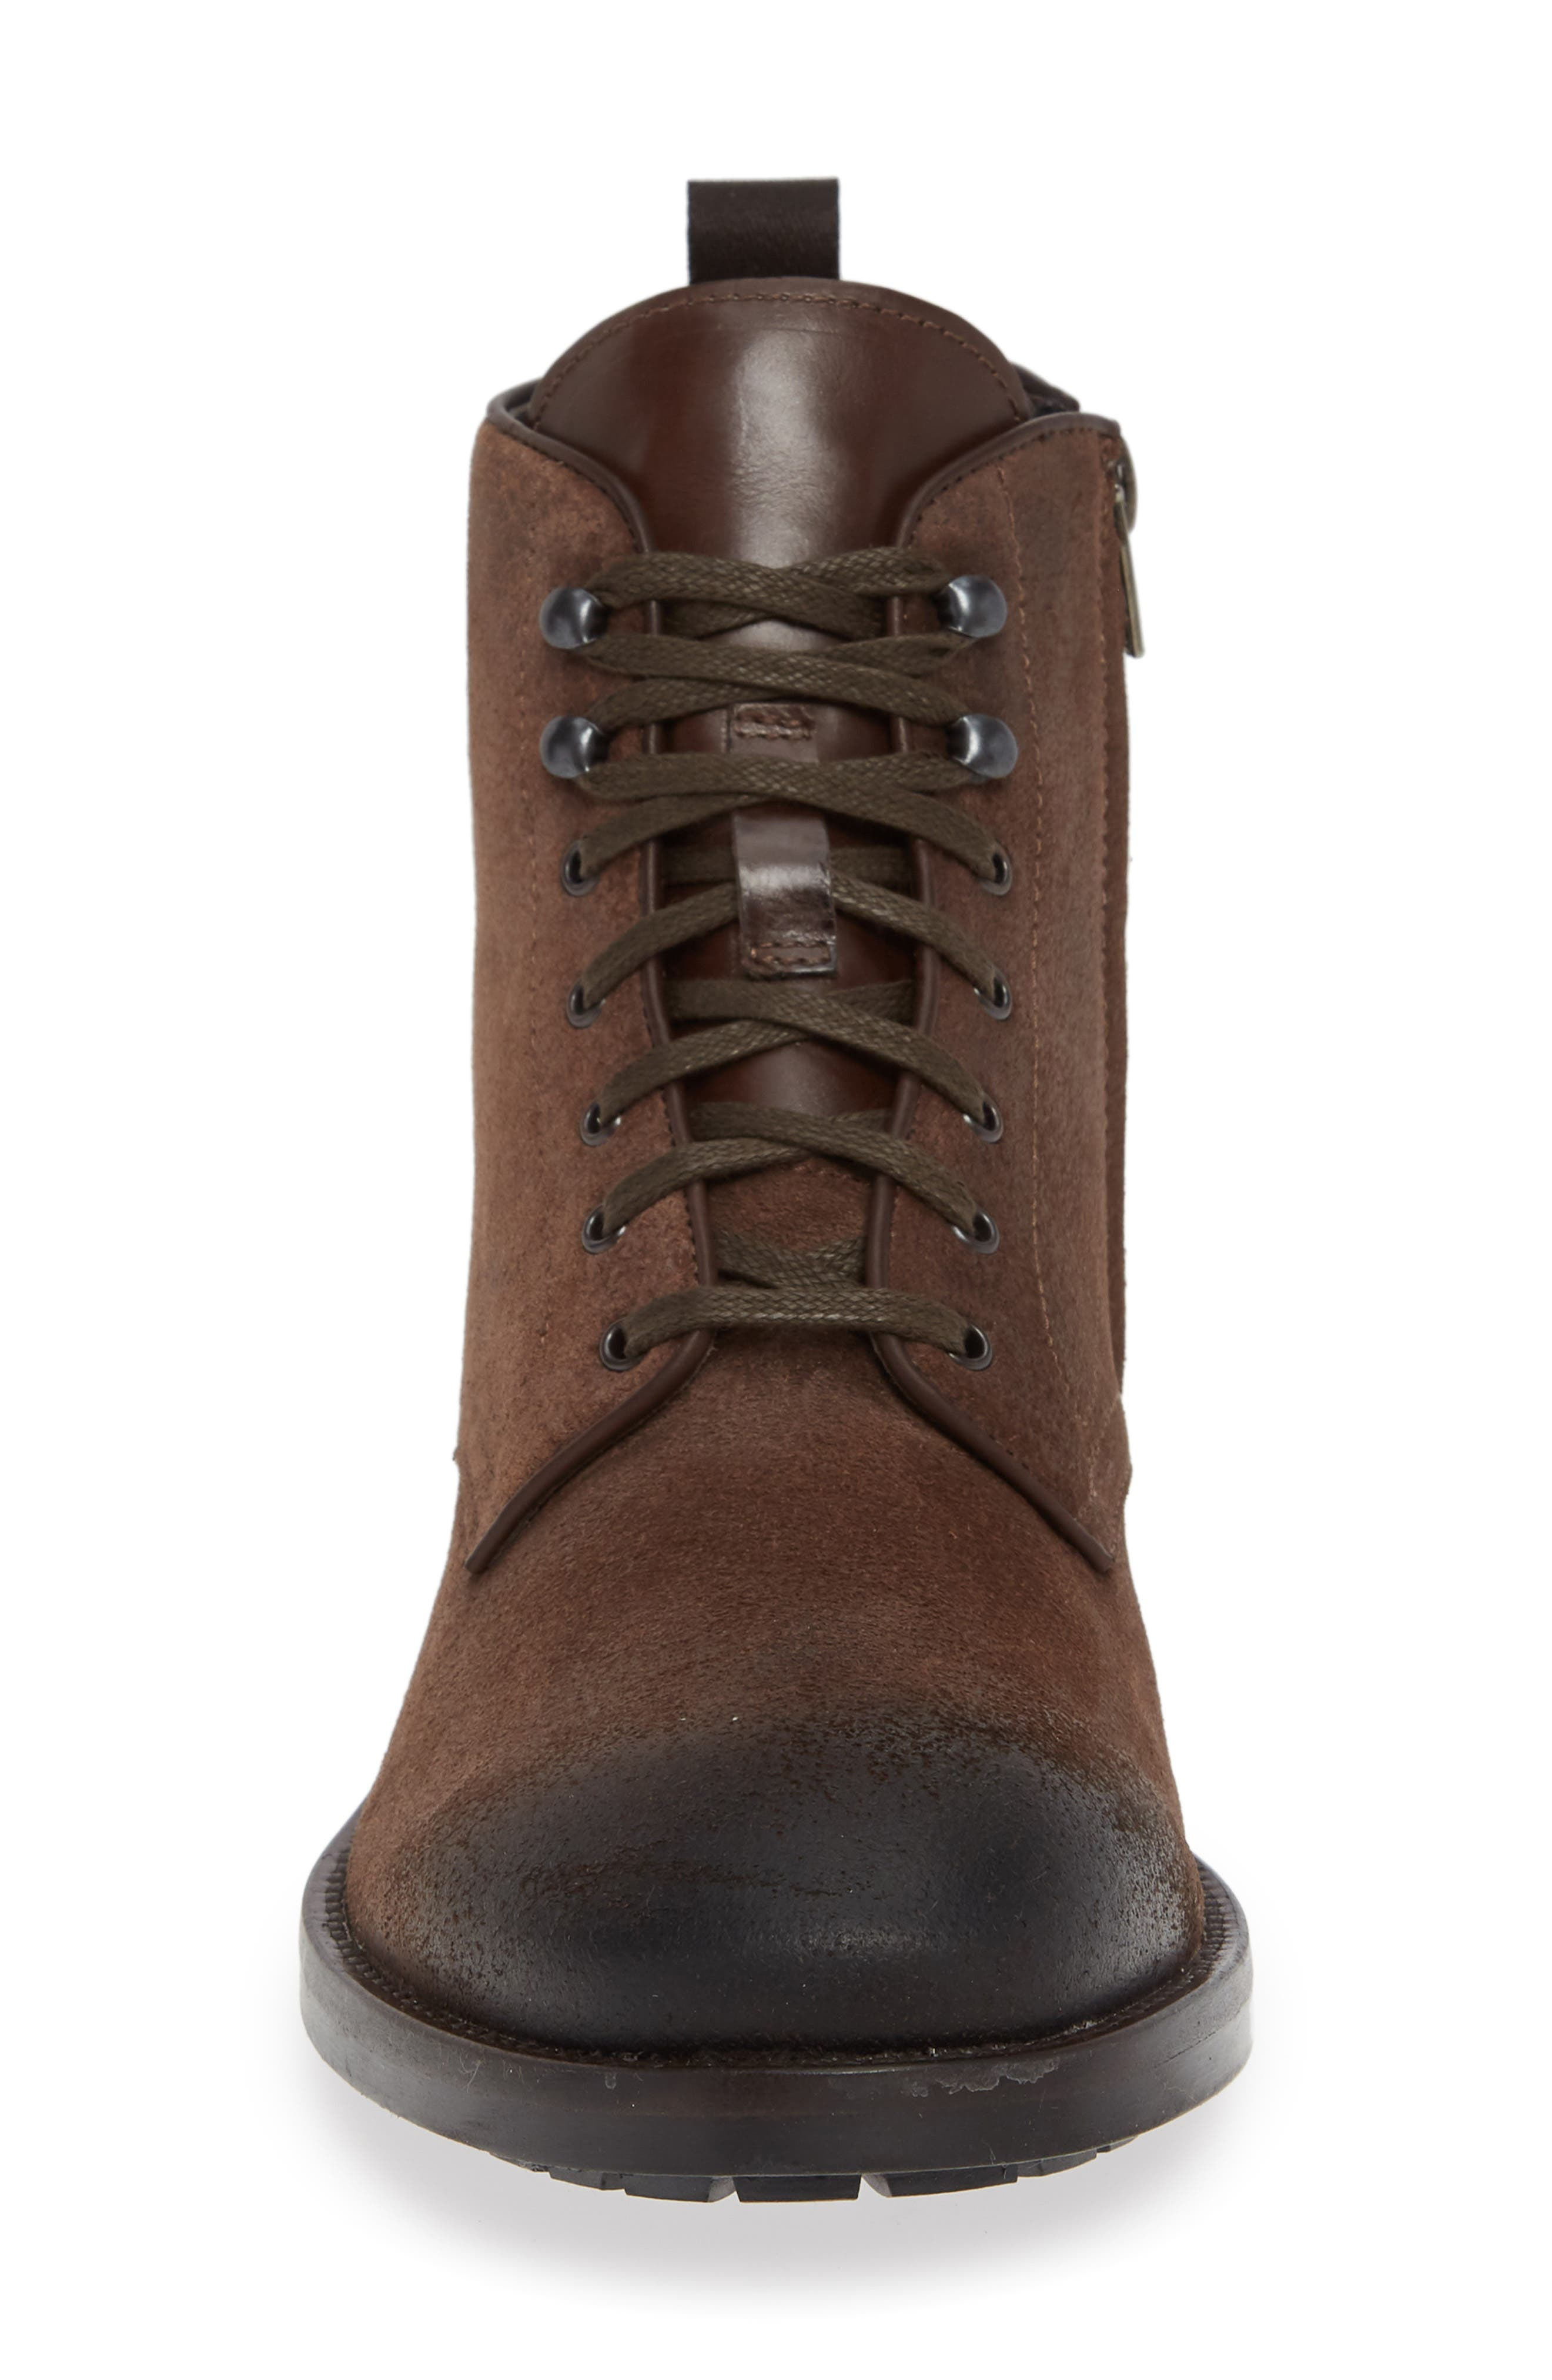 Athens Plain Toe Boot,                             Alternate thumbnail 4, color,                             TMORO SUEDE/ LEATHER